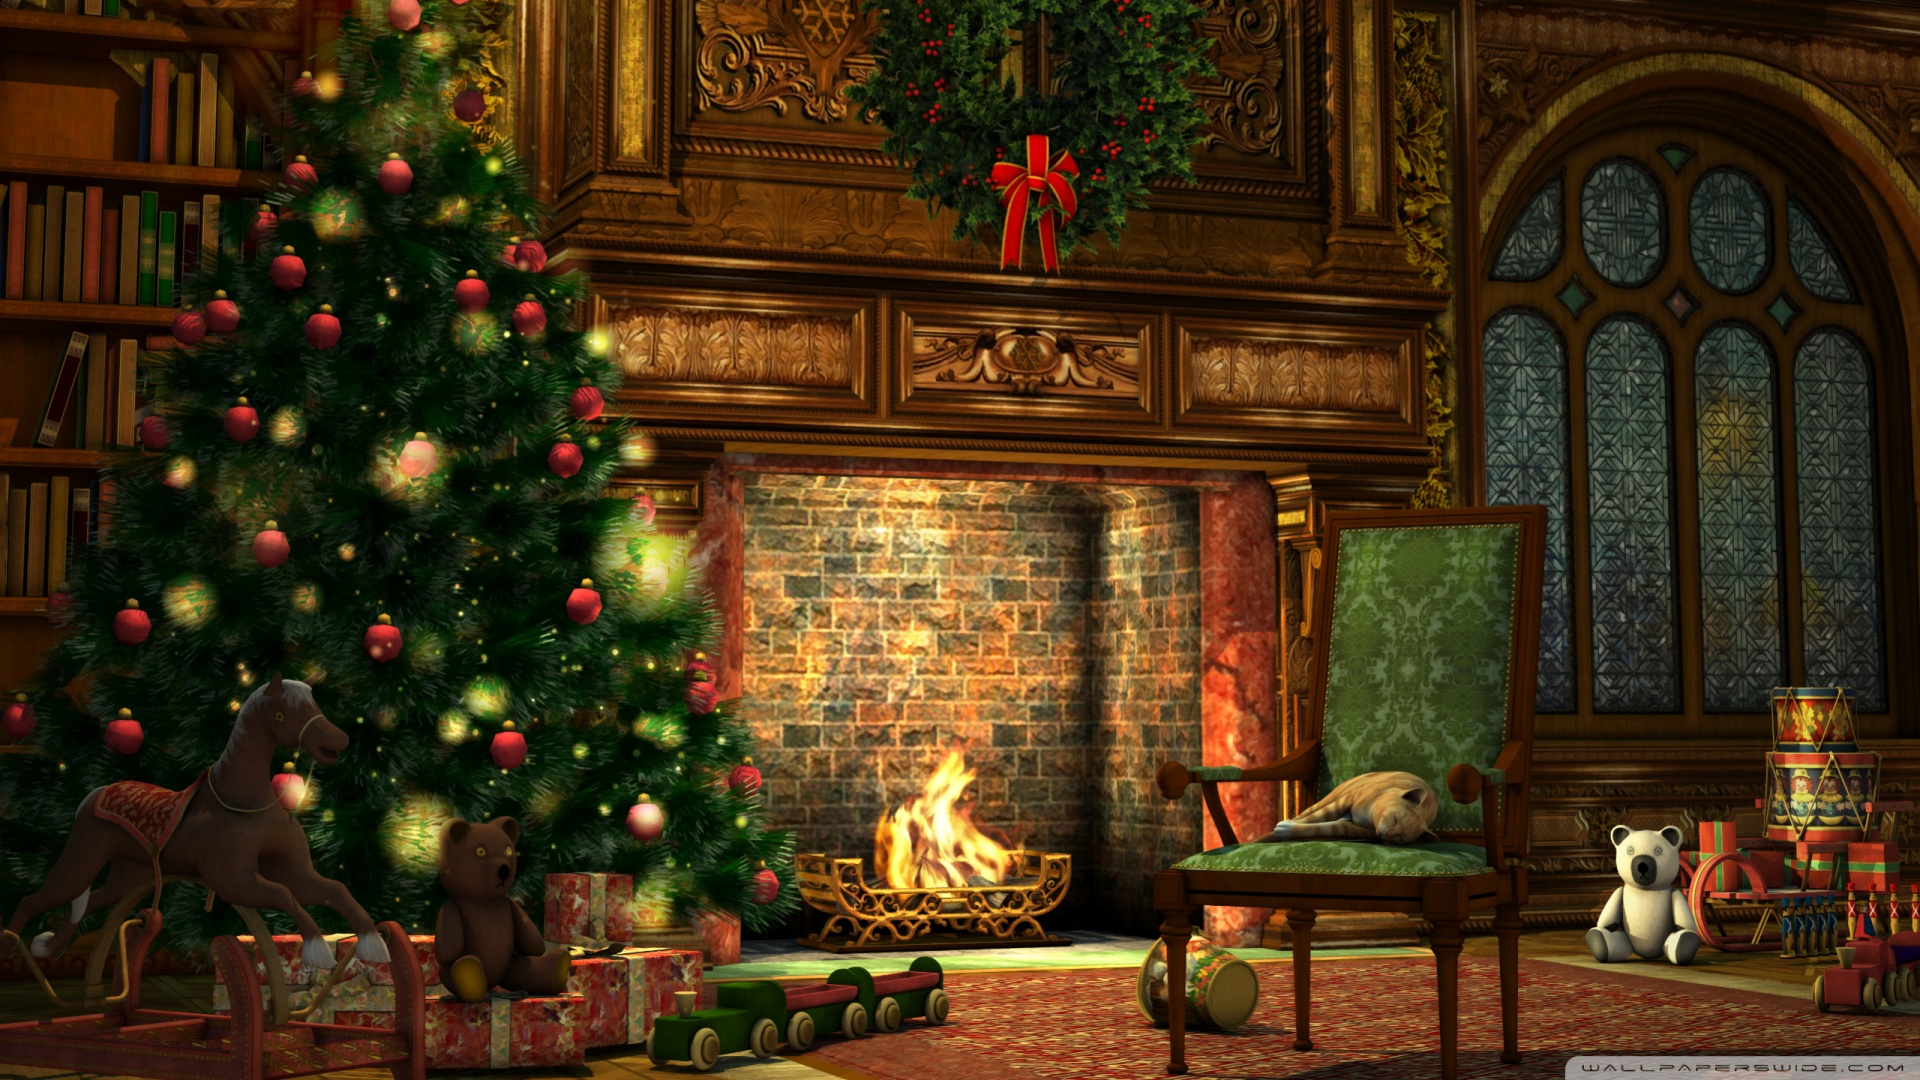 Christmas home wallpaper - SF Wallpaper